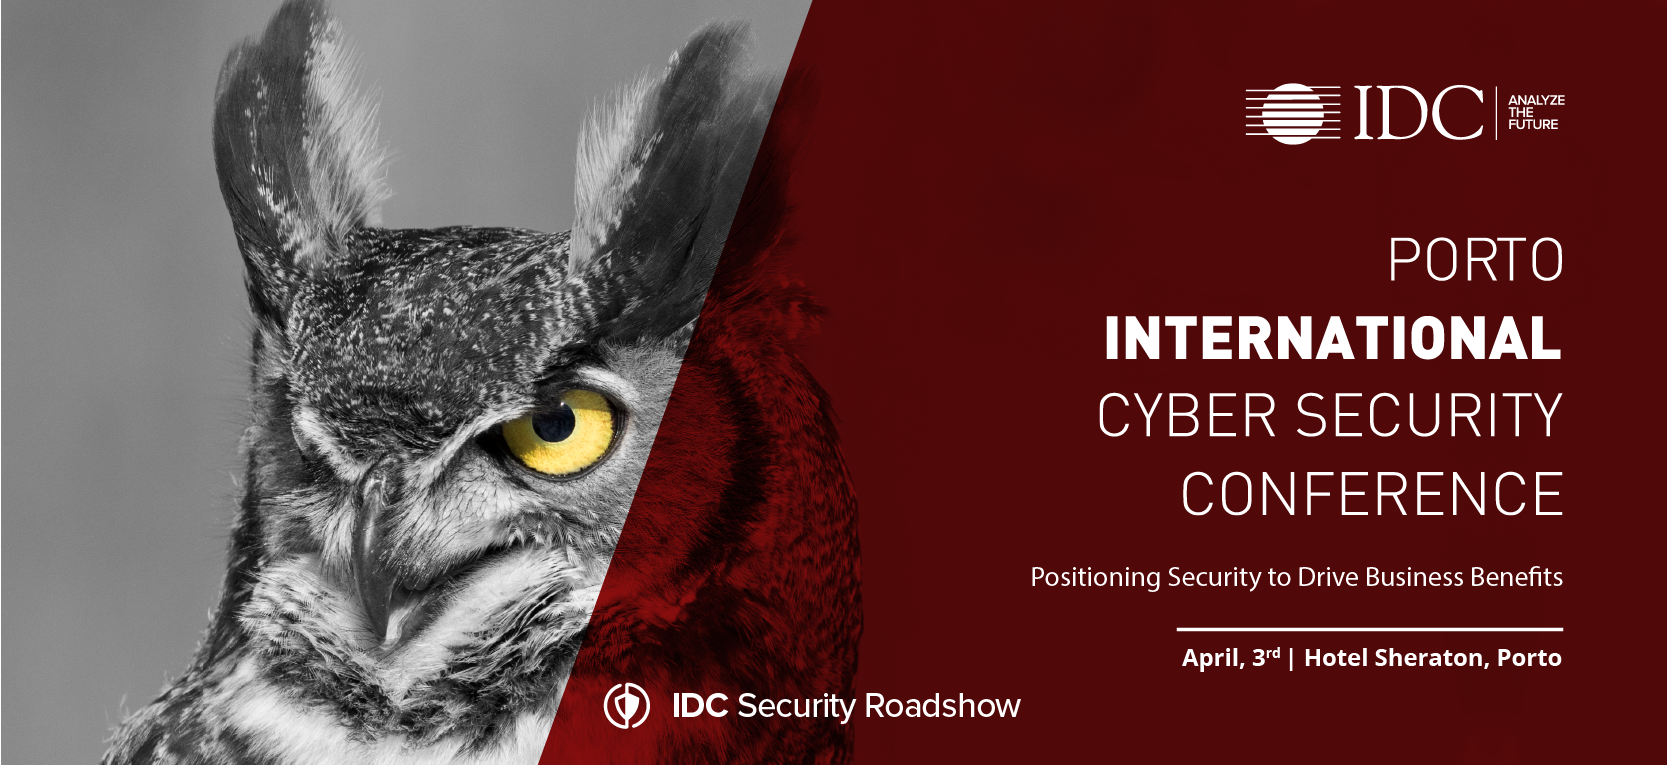 IDC PORTO INTERNATIONAL CYBERSECURITY CONFERENCE 2019